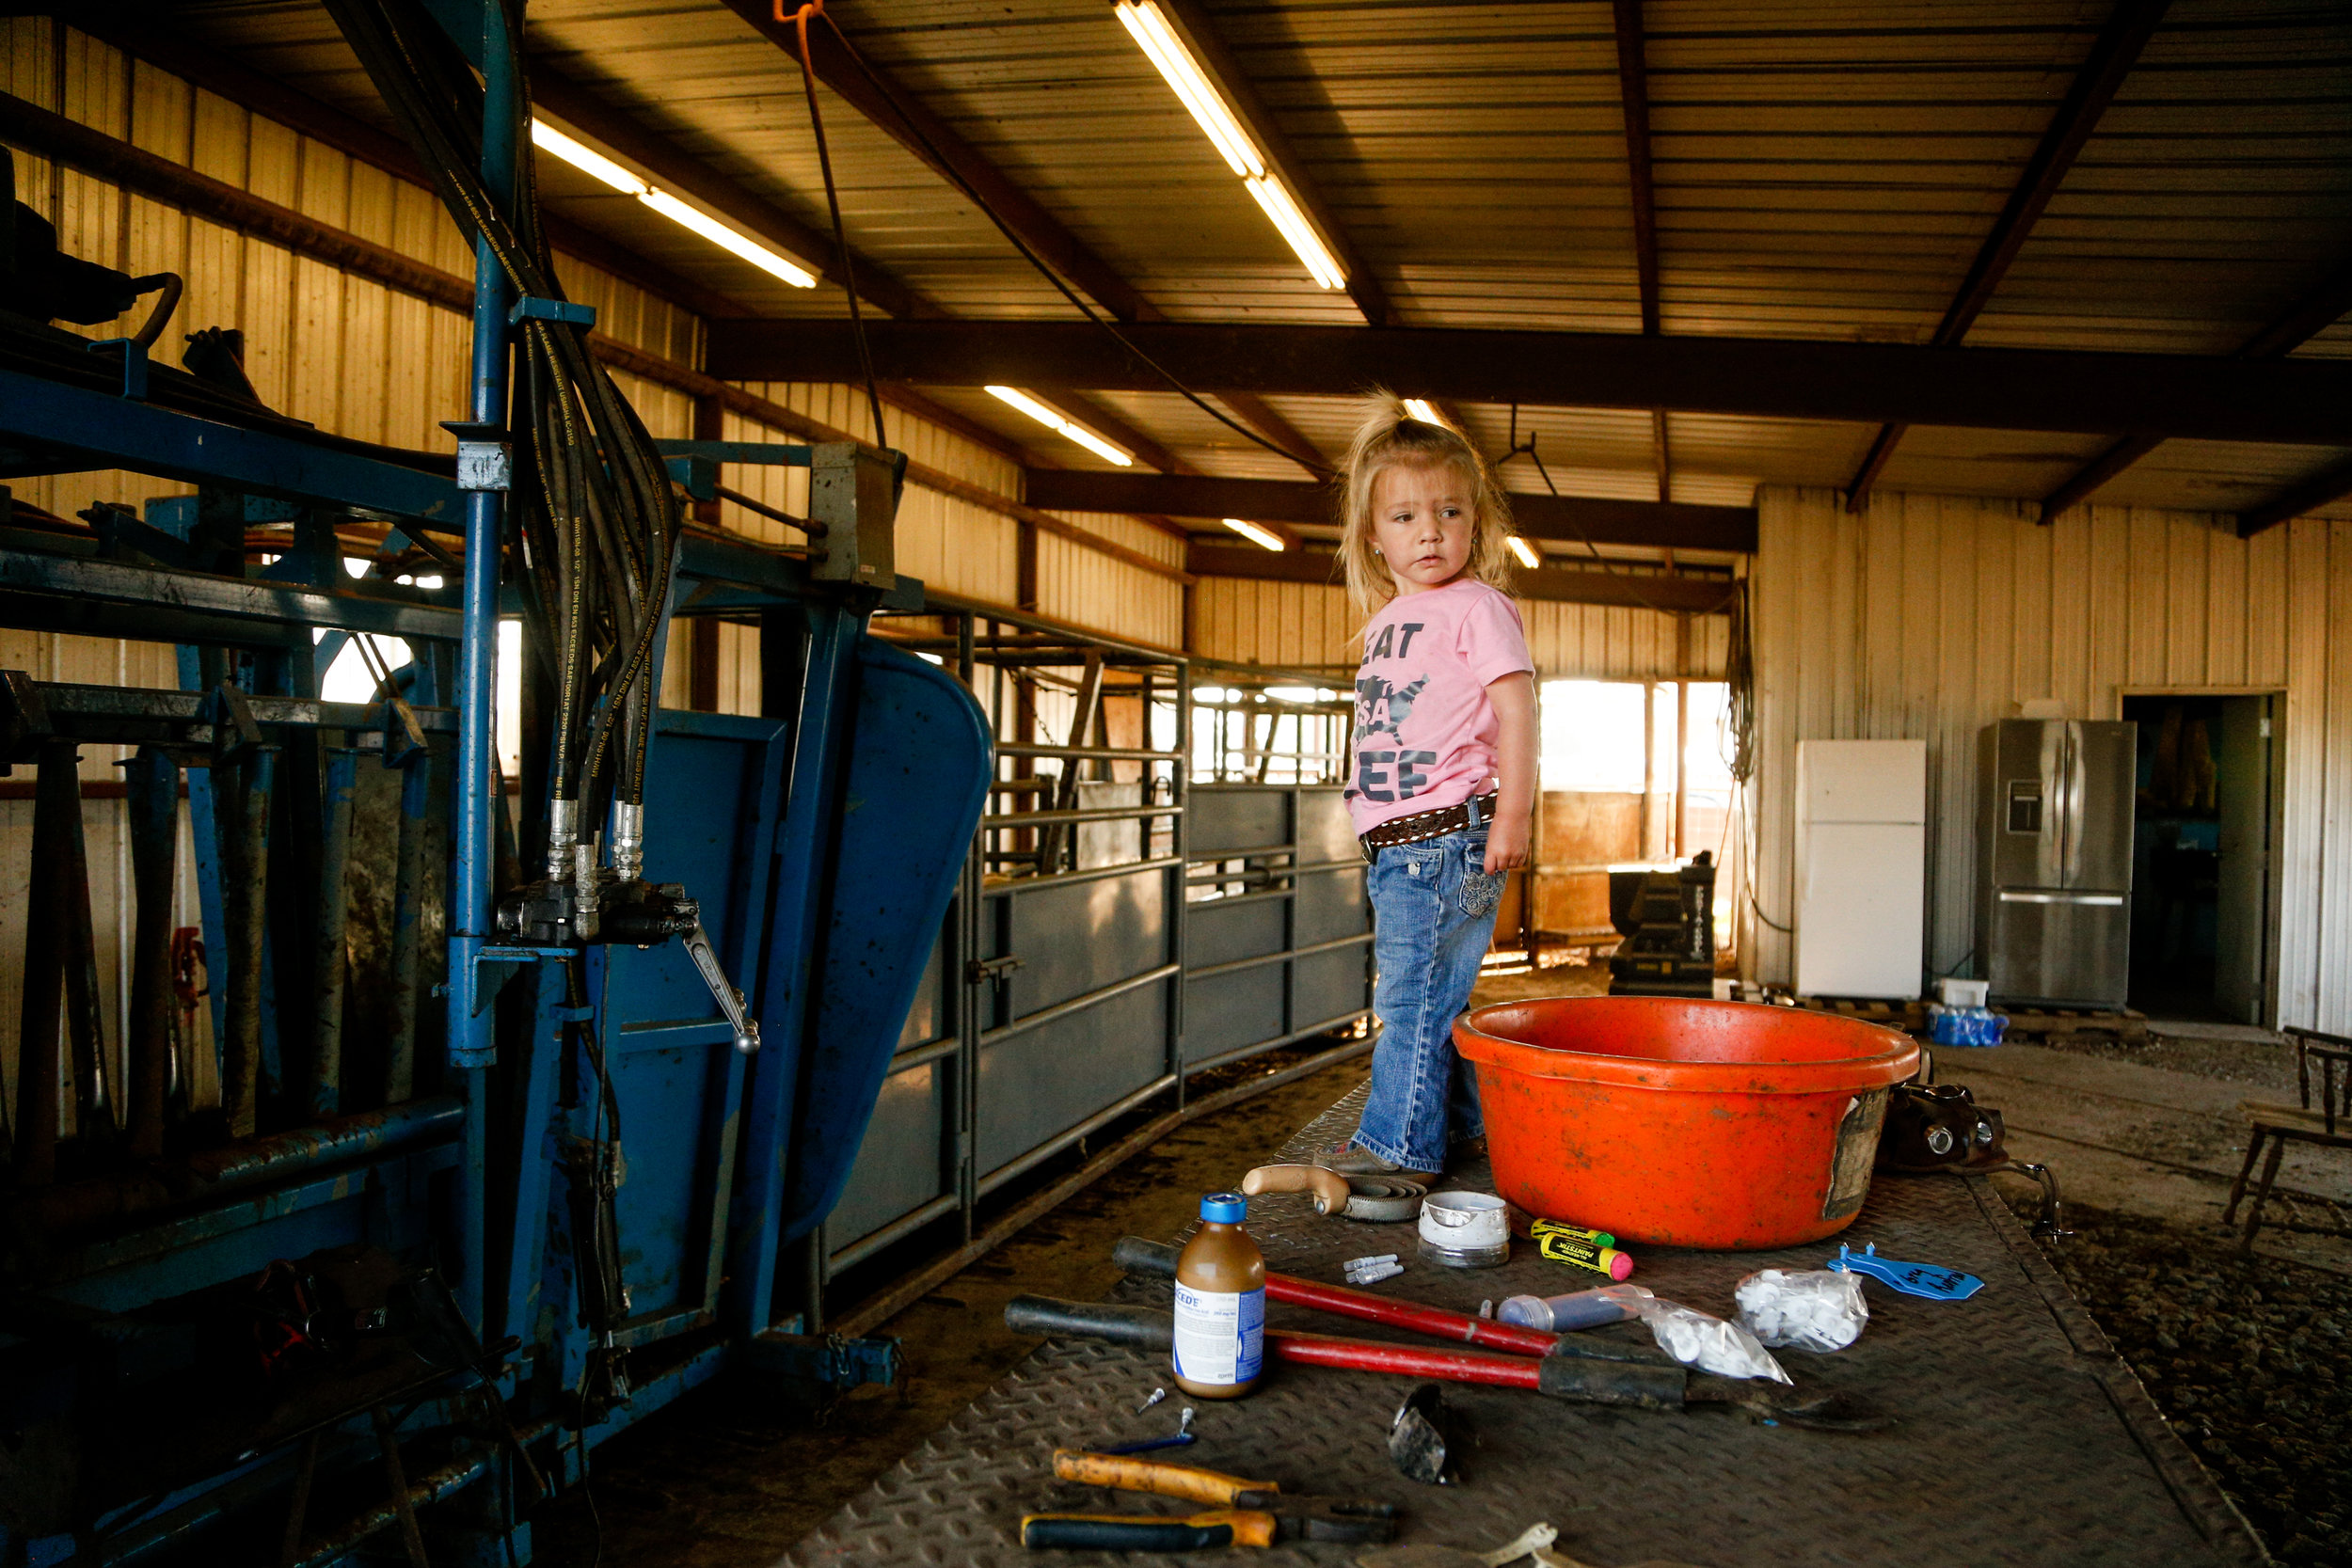 2-year-old Sonora Stierwalt stands on a table where her father set her for a moment while processing a new shipment of cattle at Stierwalt Ranch in Burbank, Oklahoma.